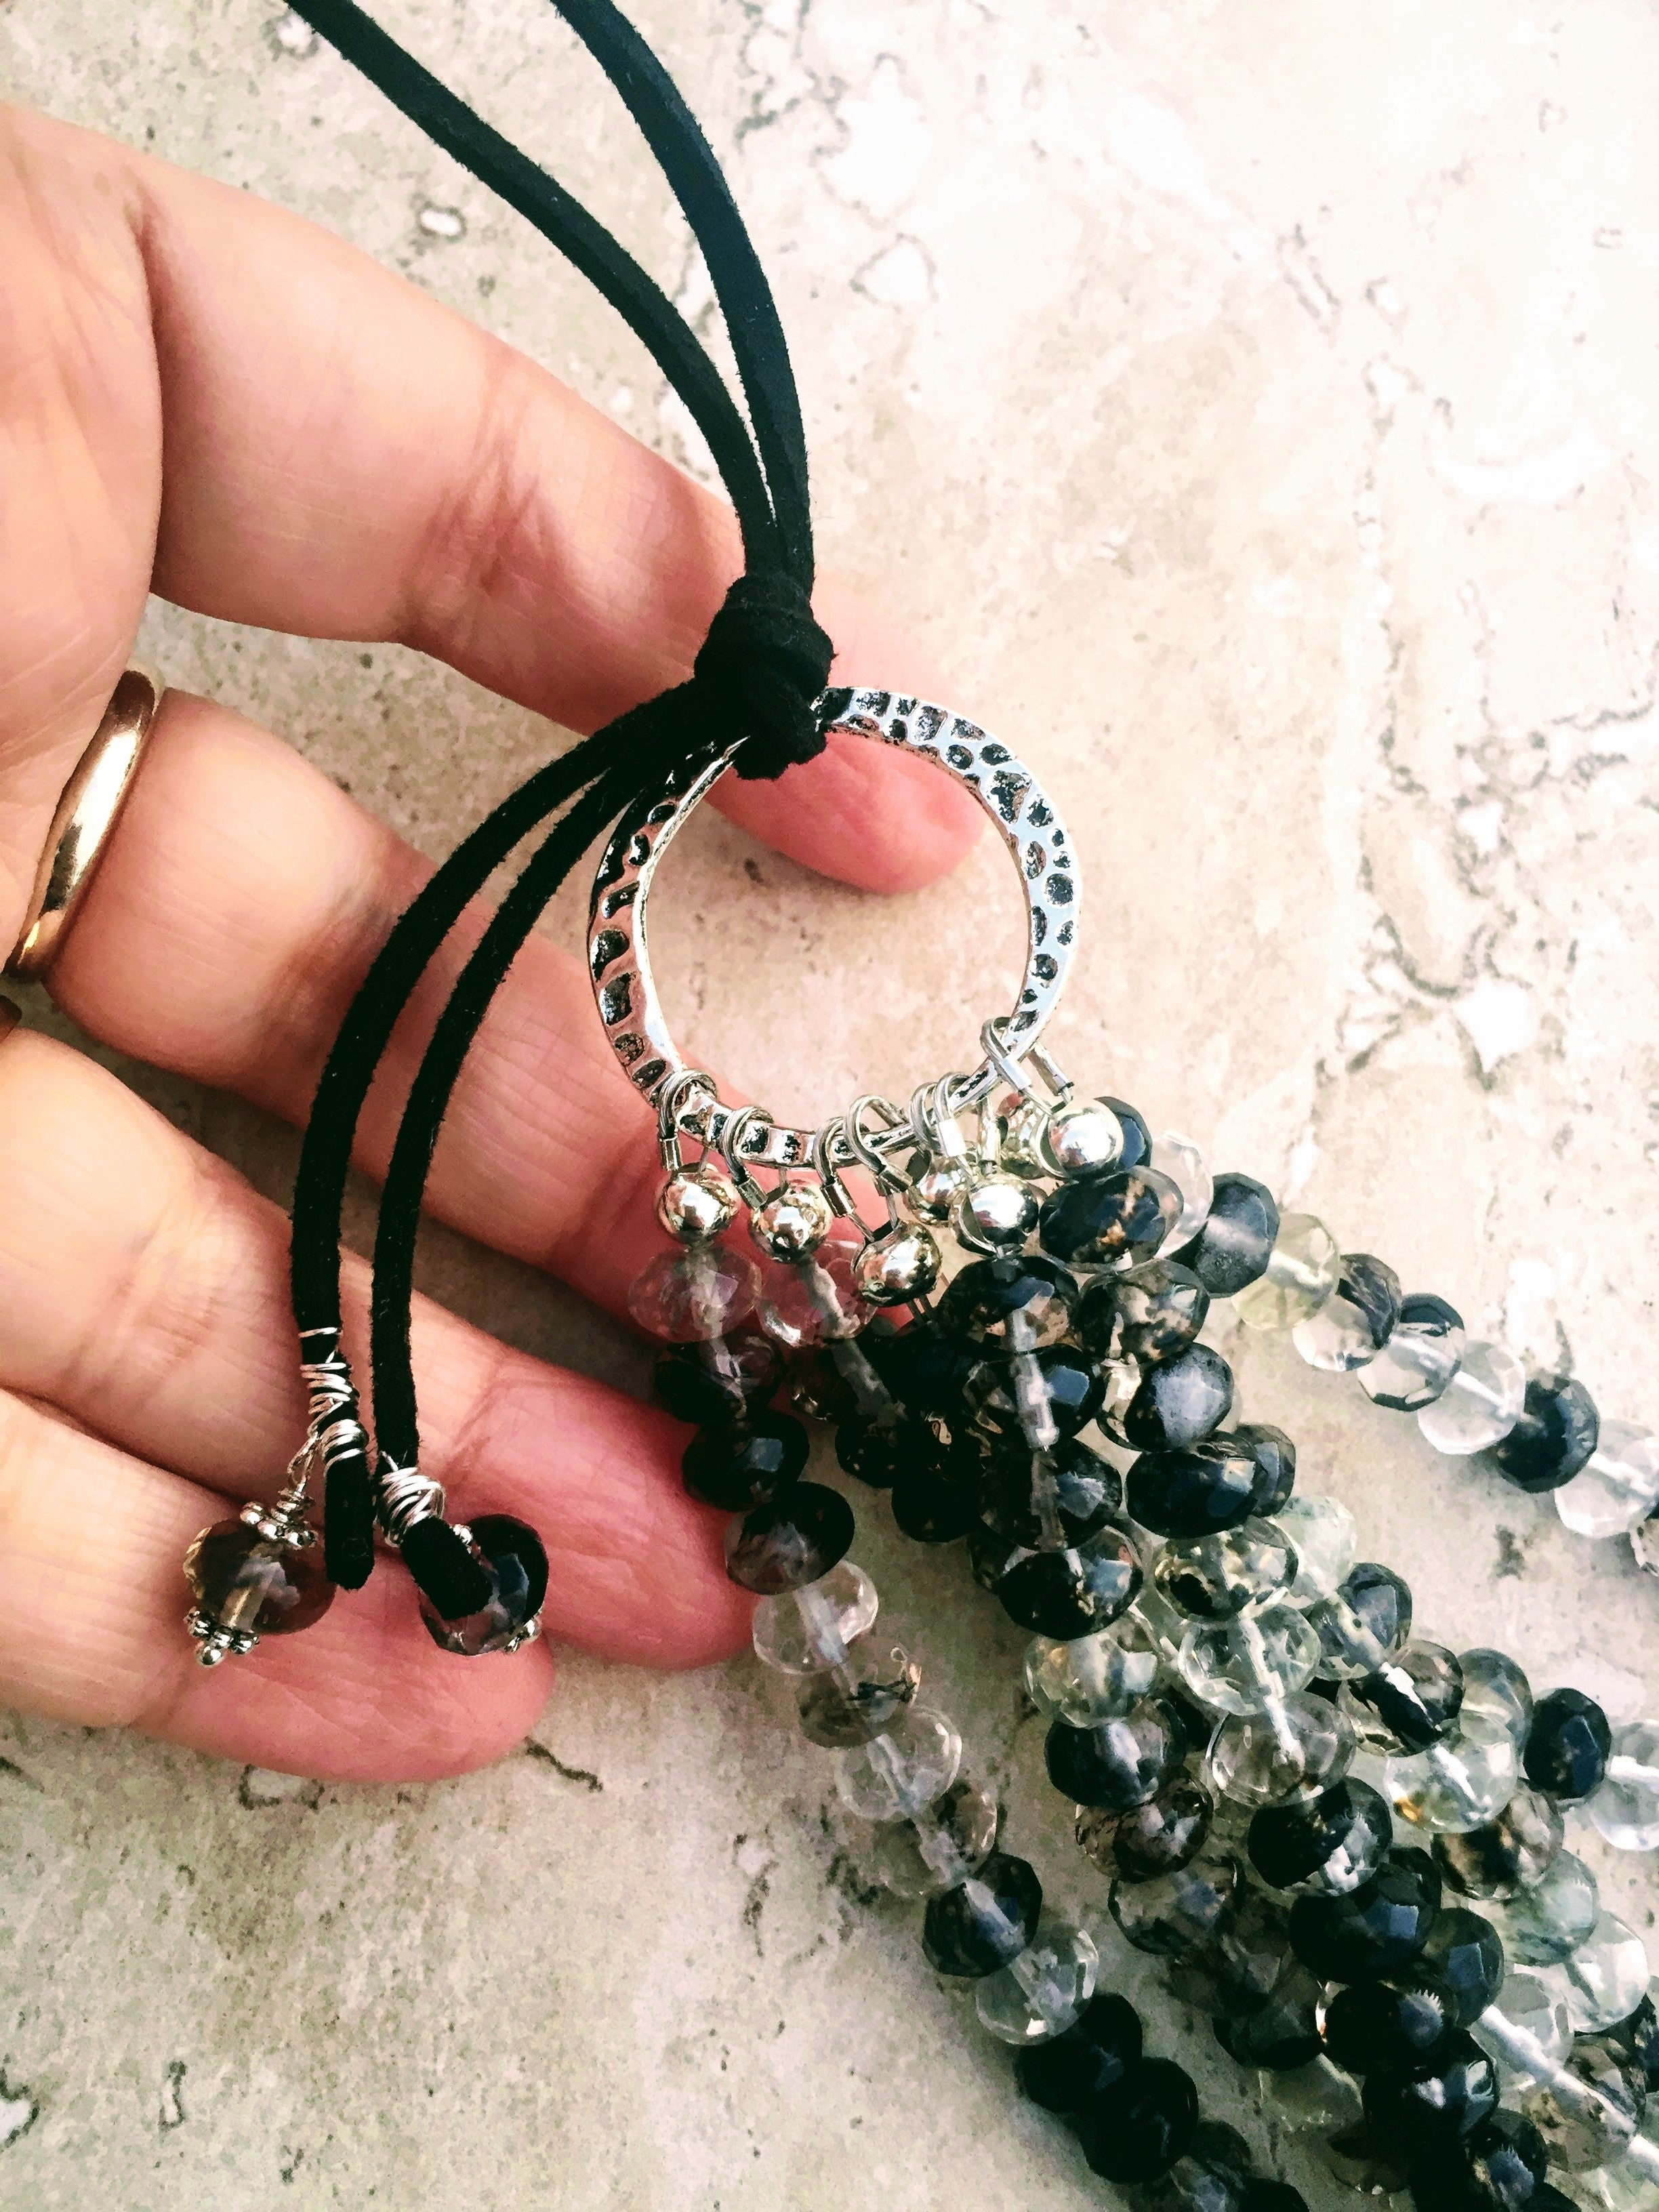 gray agate pendant necklace Smoky quartz office wear neutral colors large silver beads adjustable necklace bold necklace